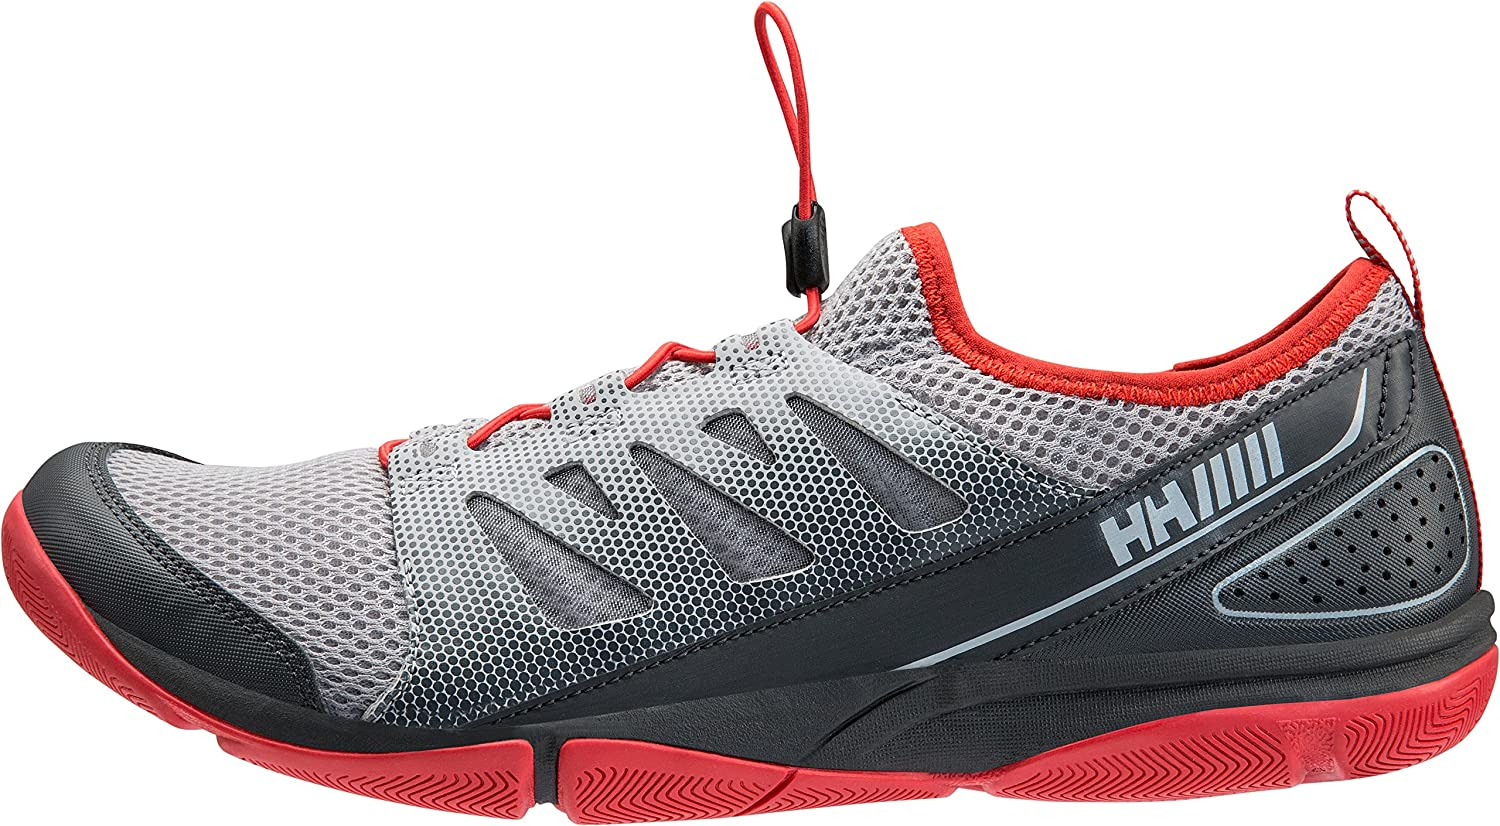 Helly Hansen Men's Aquapace 2 Boating shoes